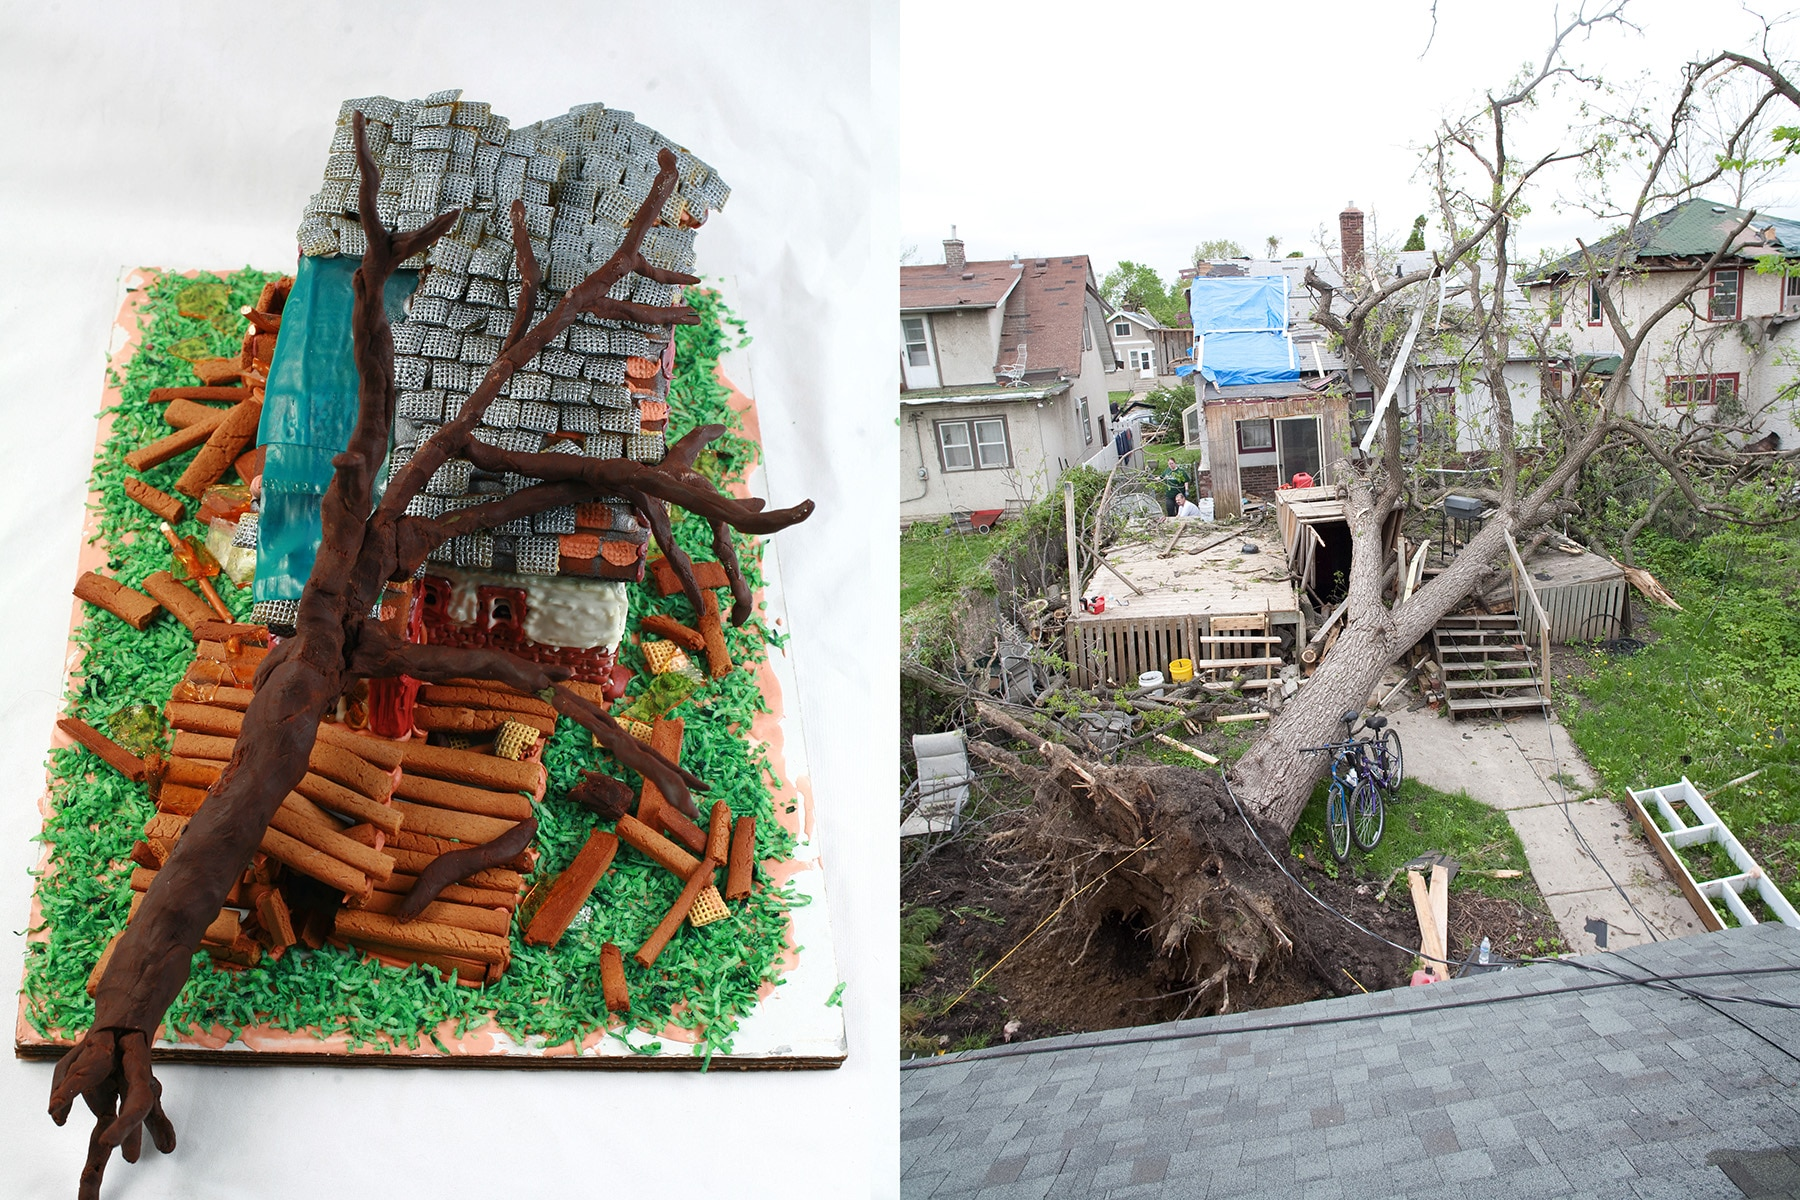 A compilation image showing the back of the gingerbread house, alongside a photo of our house on the day of the tornado.